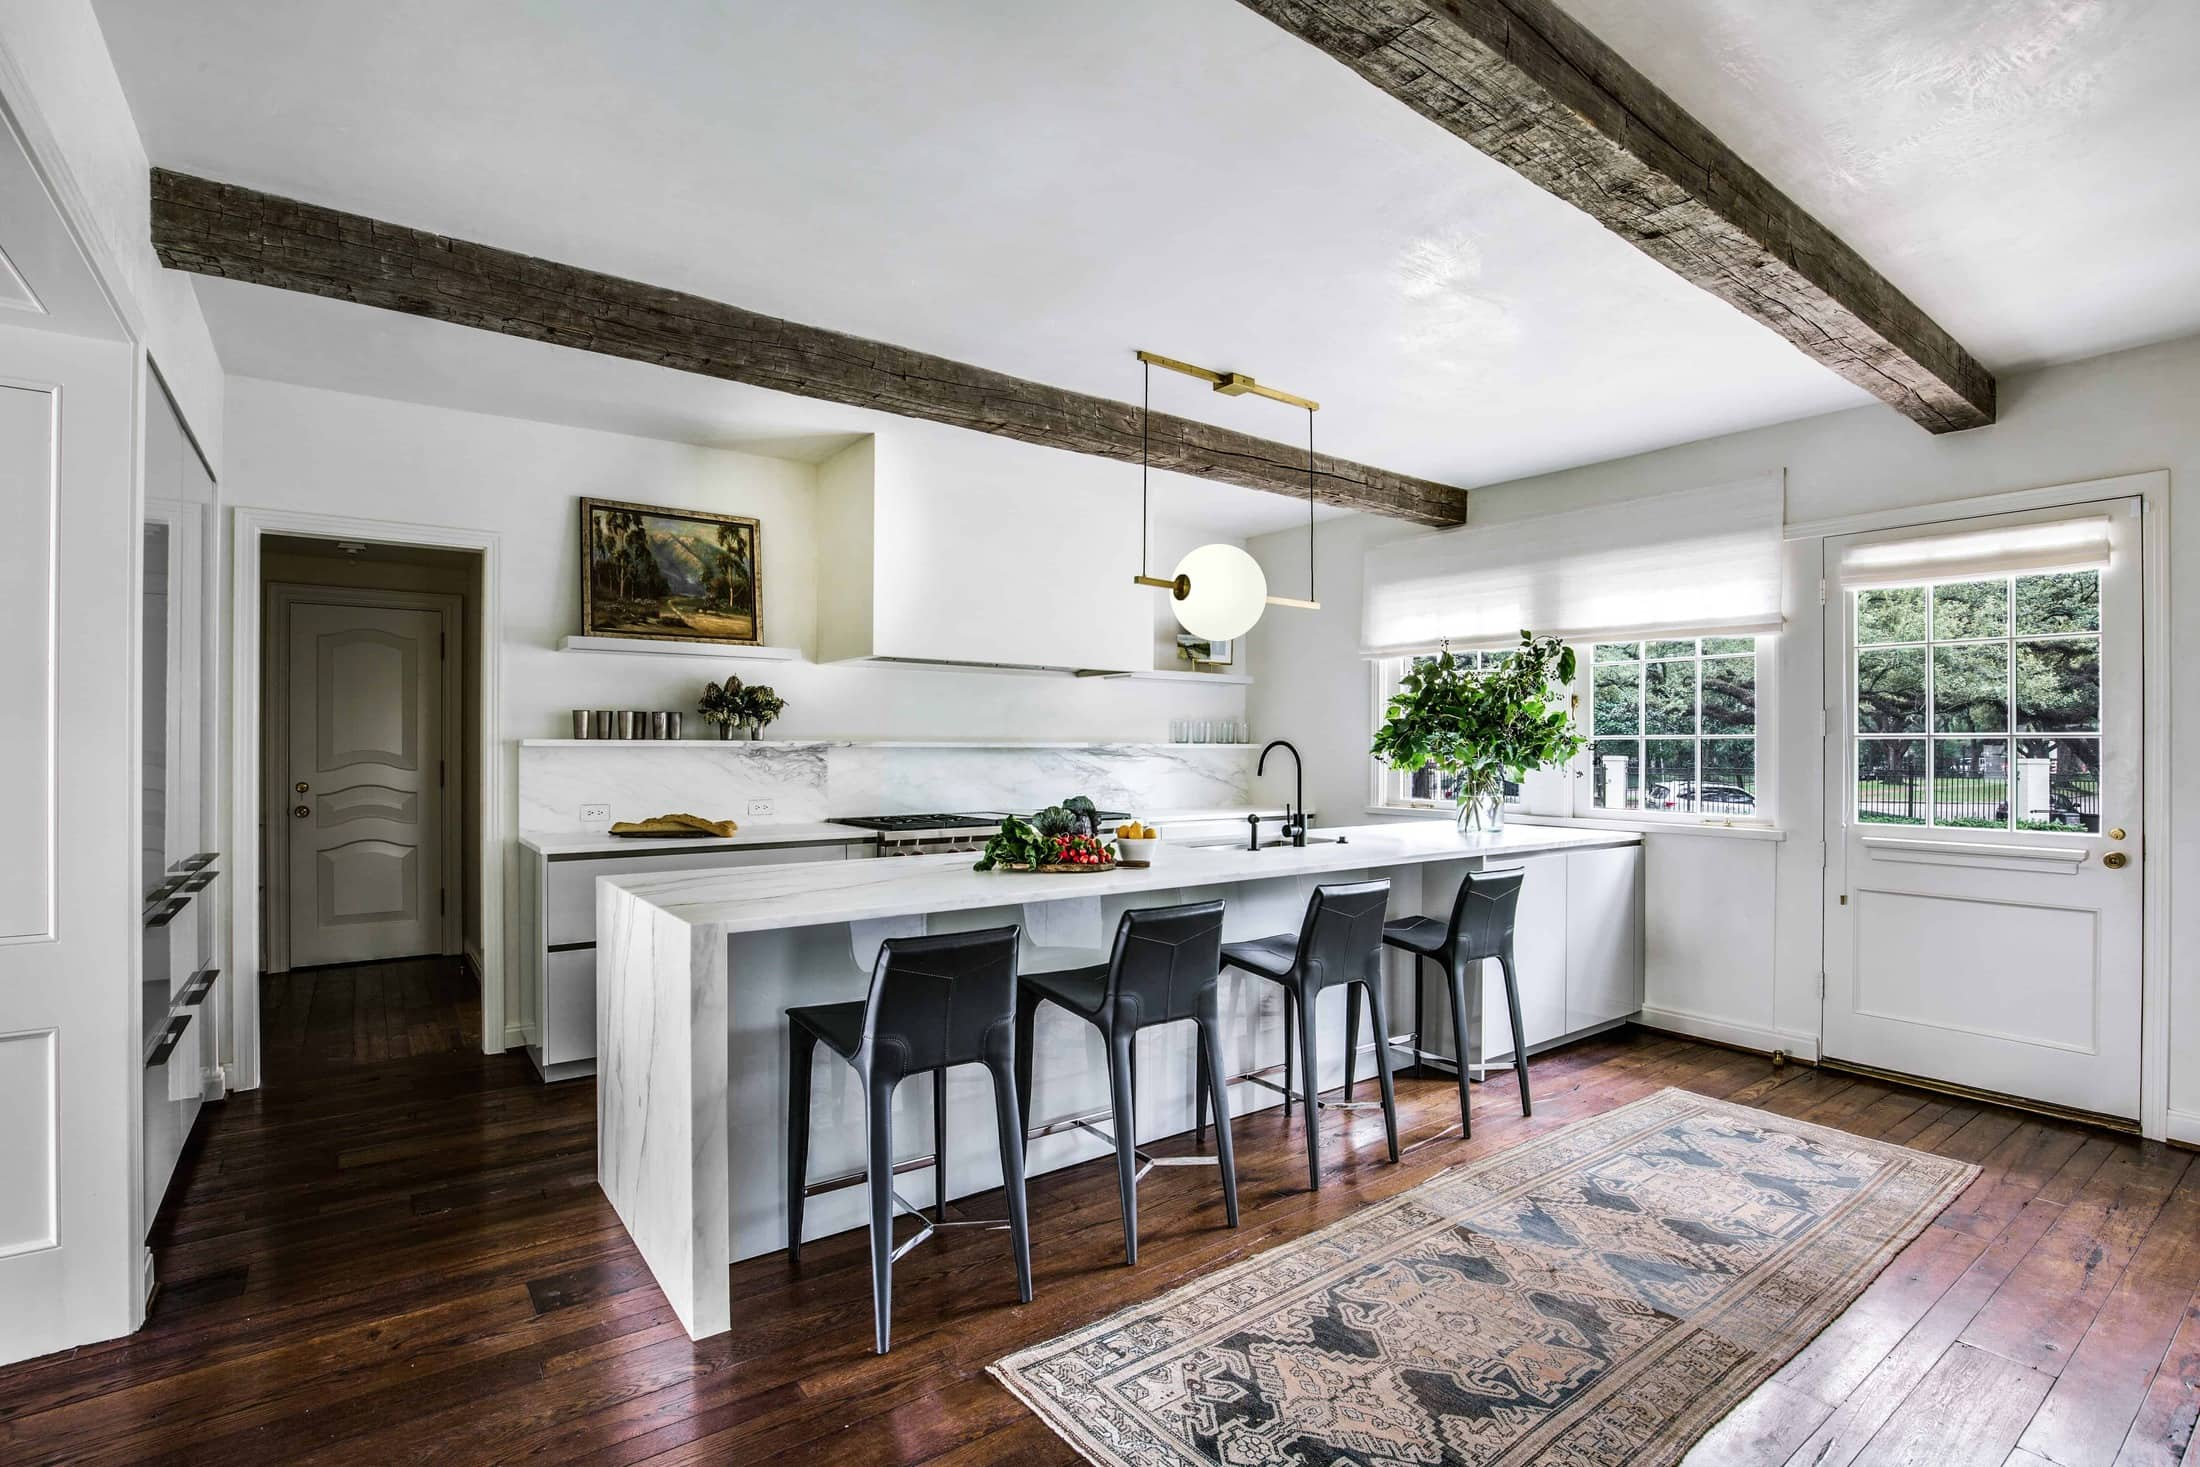 ultra-modern eggersmann german kitchen in aria stone marble featured in a parisian apartment style remodel of a home in the Houston Museum district